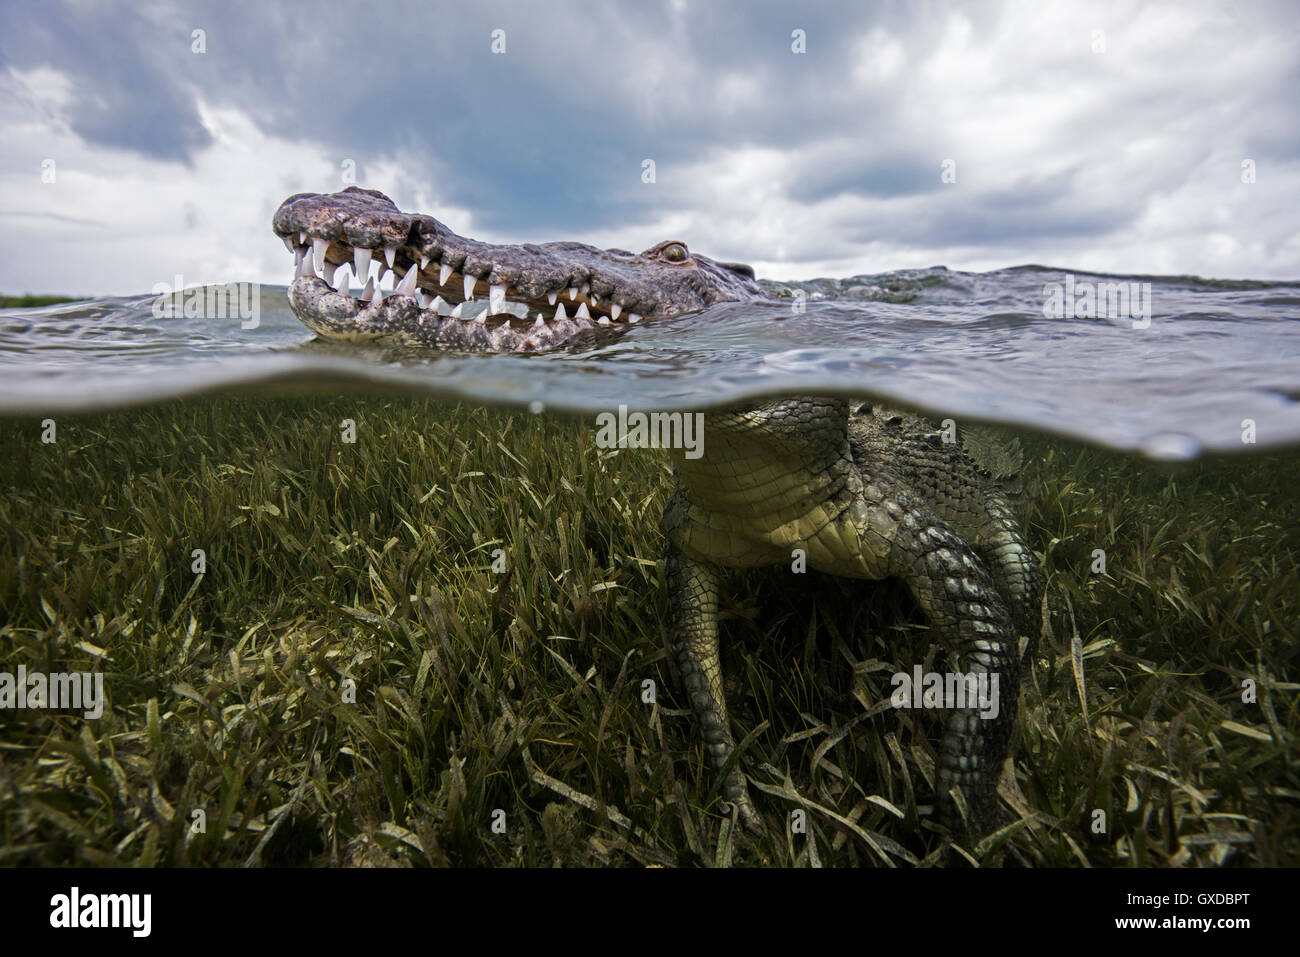 American croc (Crocodylus acutus) at sea surface, Chinchorro Banks, Mexico - Stock Image